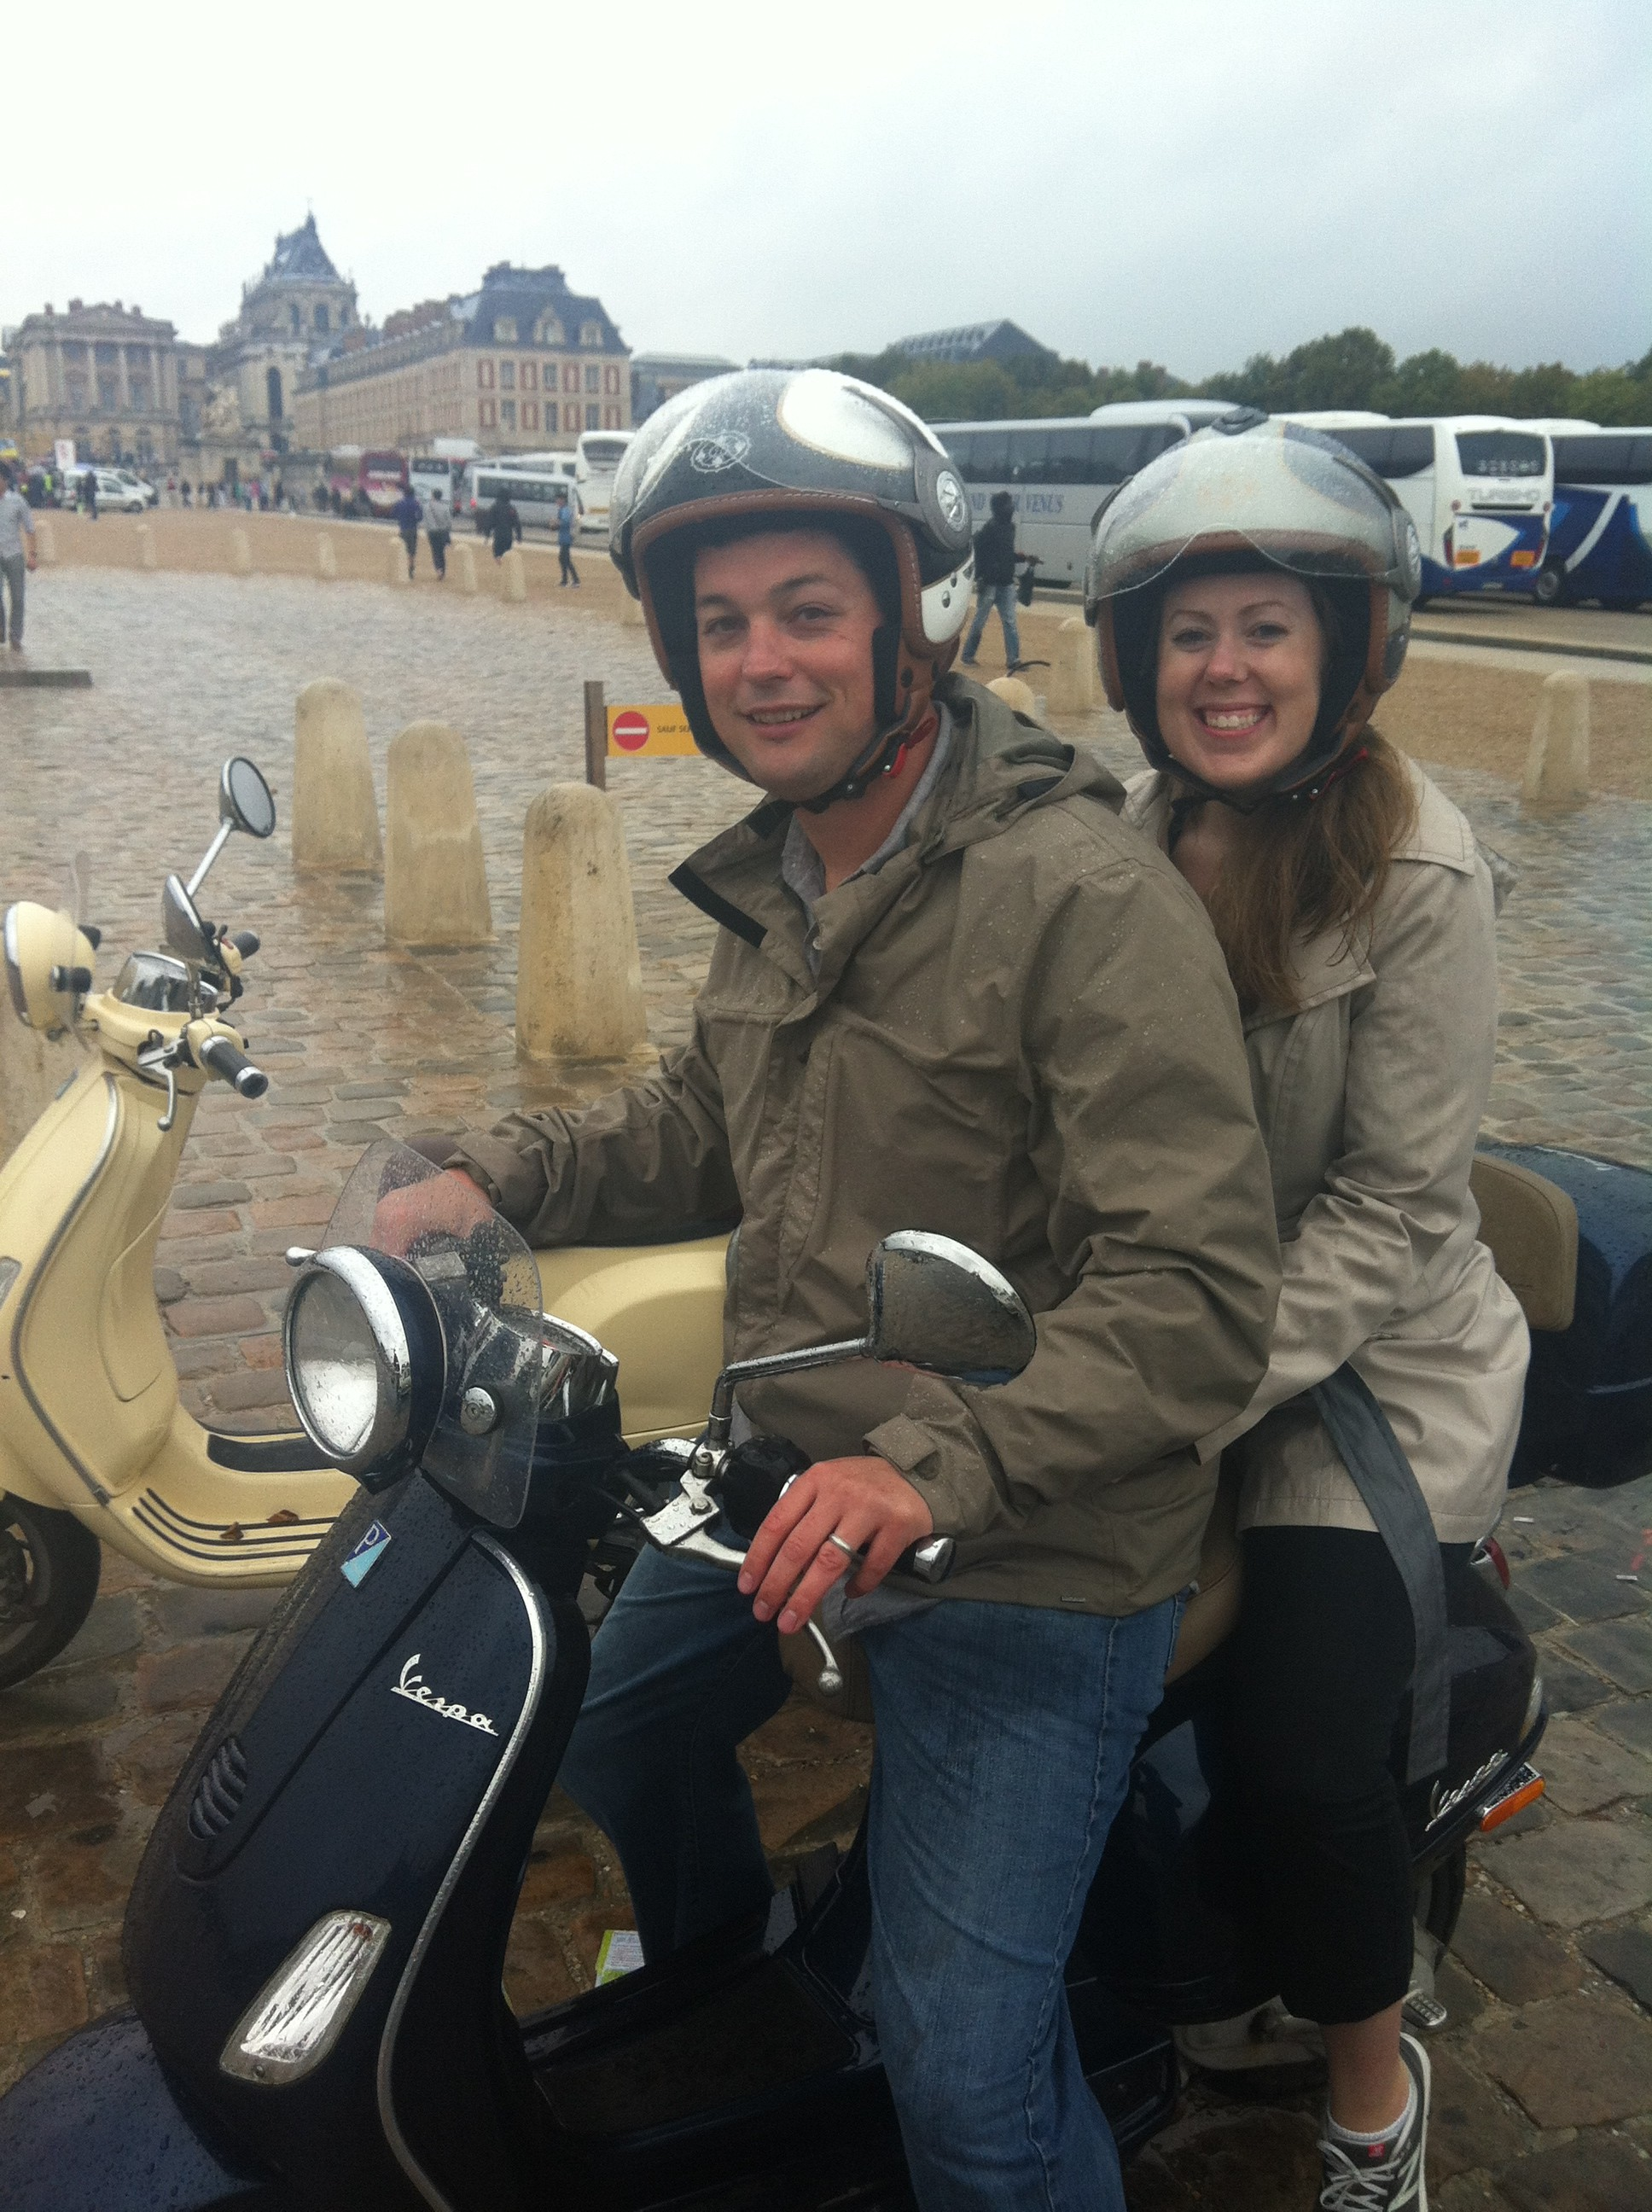 Adam and Melissa at Versailles Palace on their scooter after a Paris to Versailles ride.